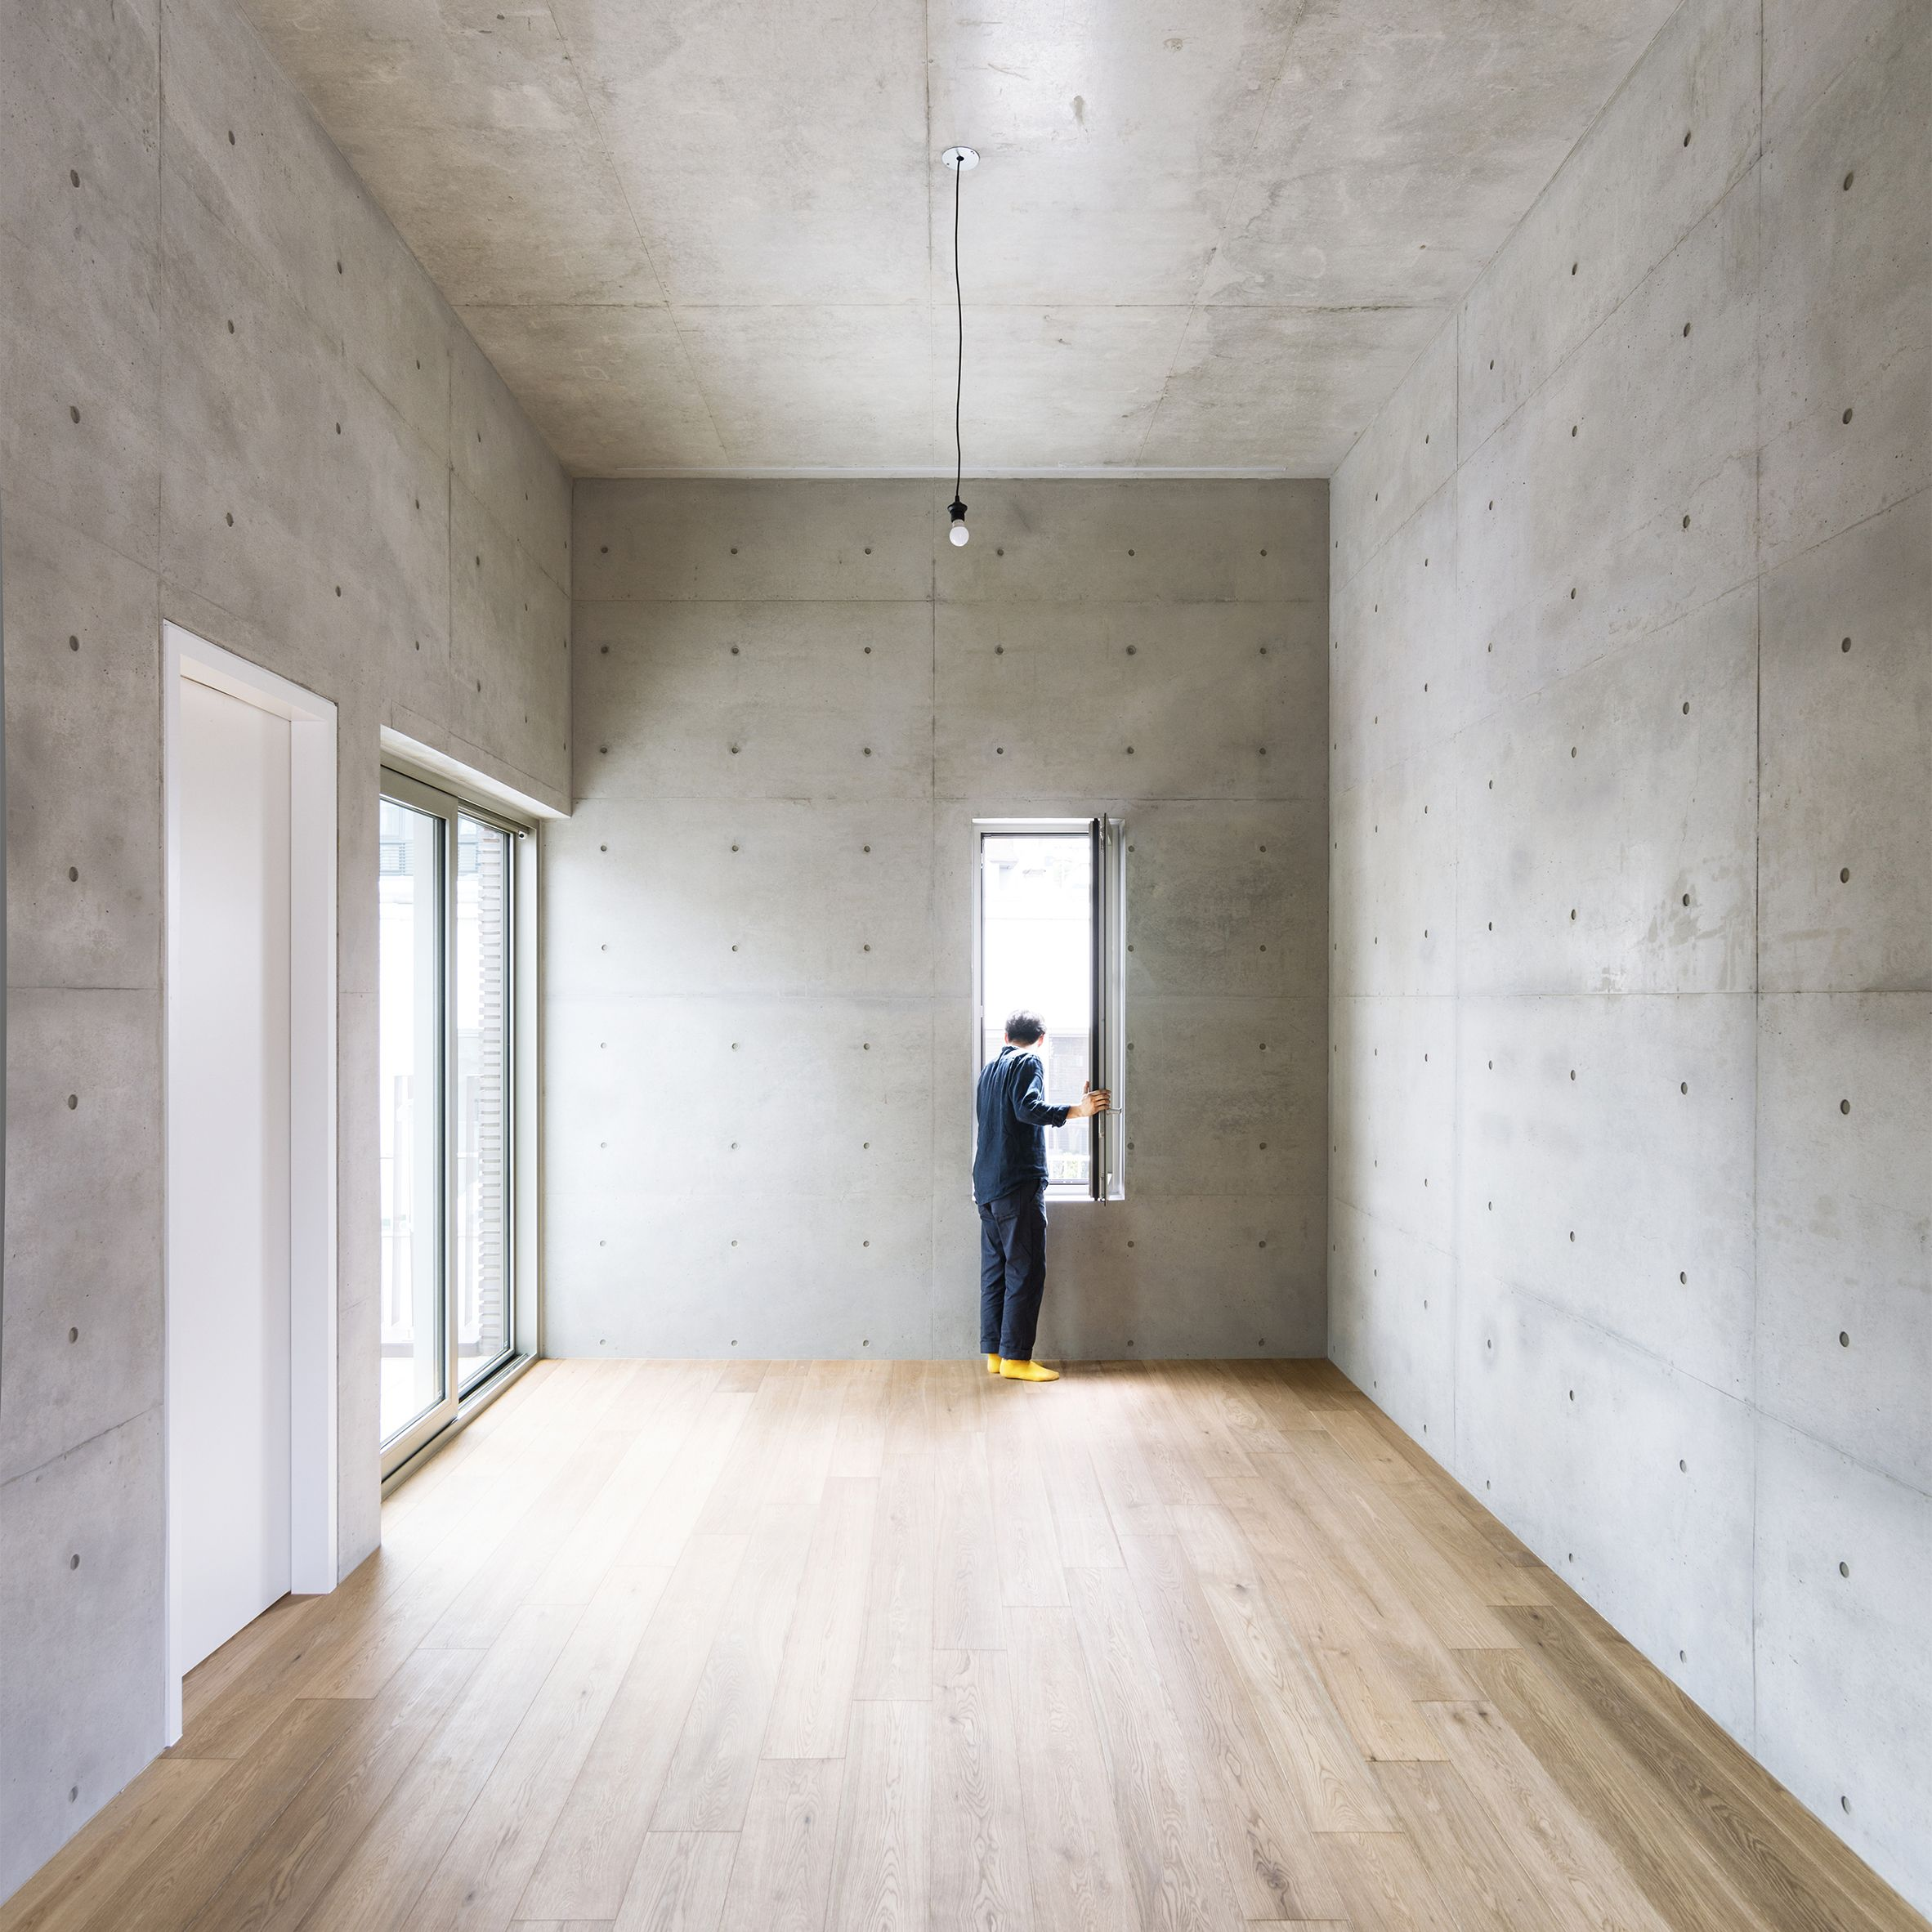 Textured Surfaces And Sculptural Staircases Are Some Of The Ways That Concrete Can Be Used In Home Int Concrete Interiors Concrete Walls Interior Concrete Wood